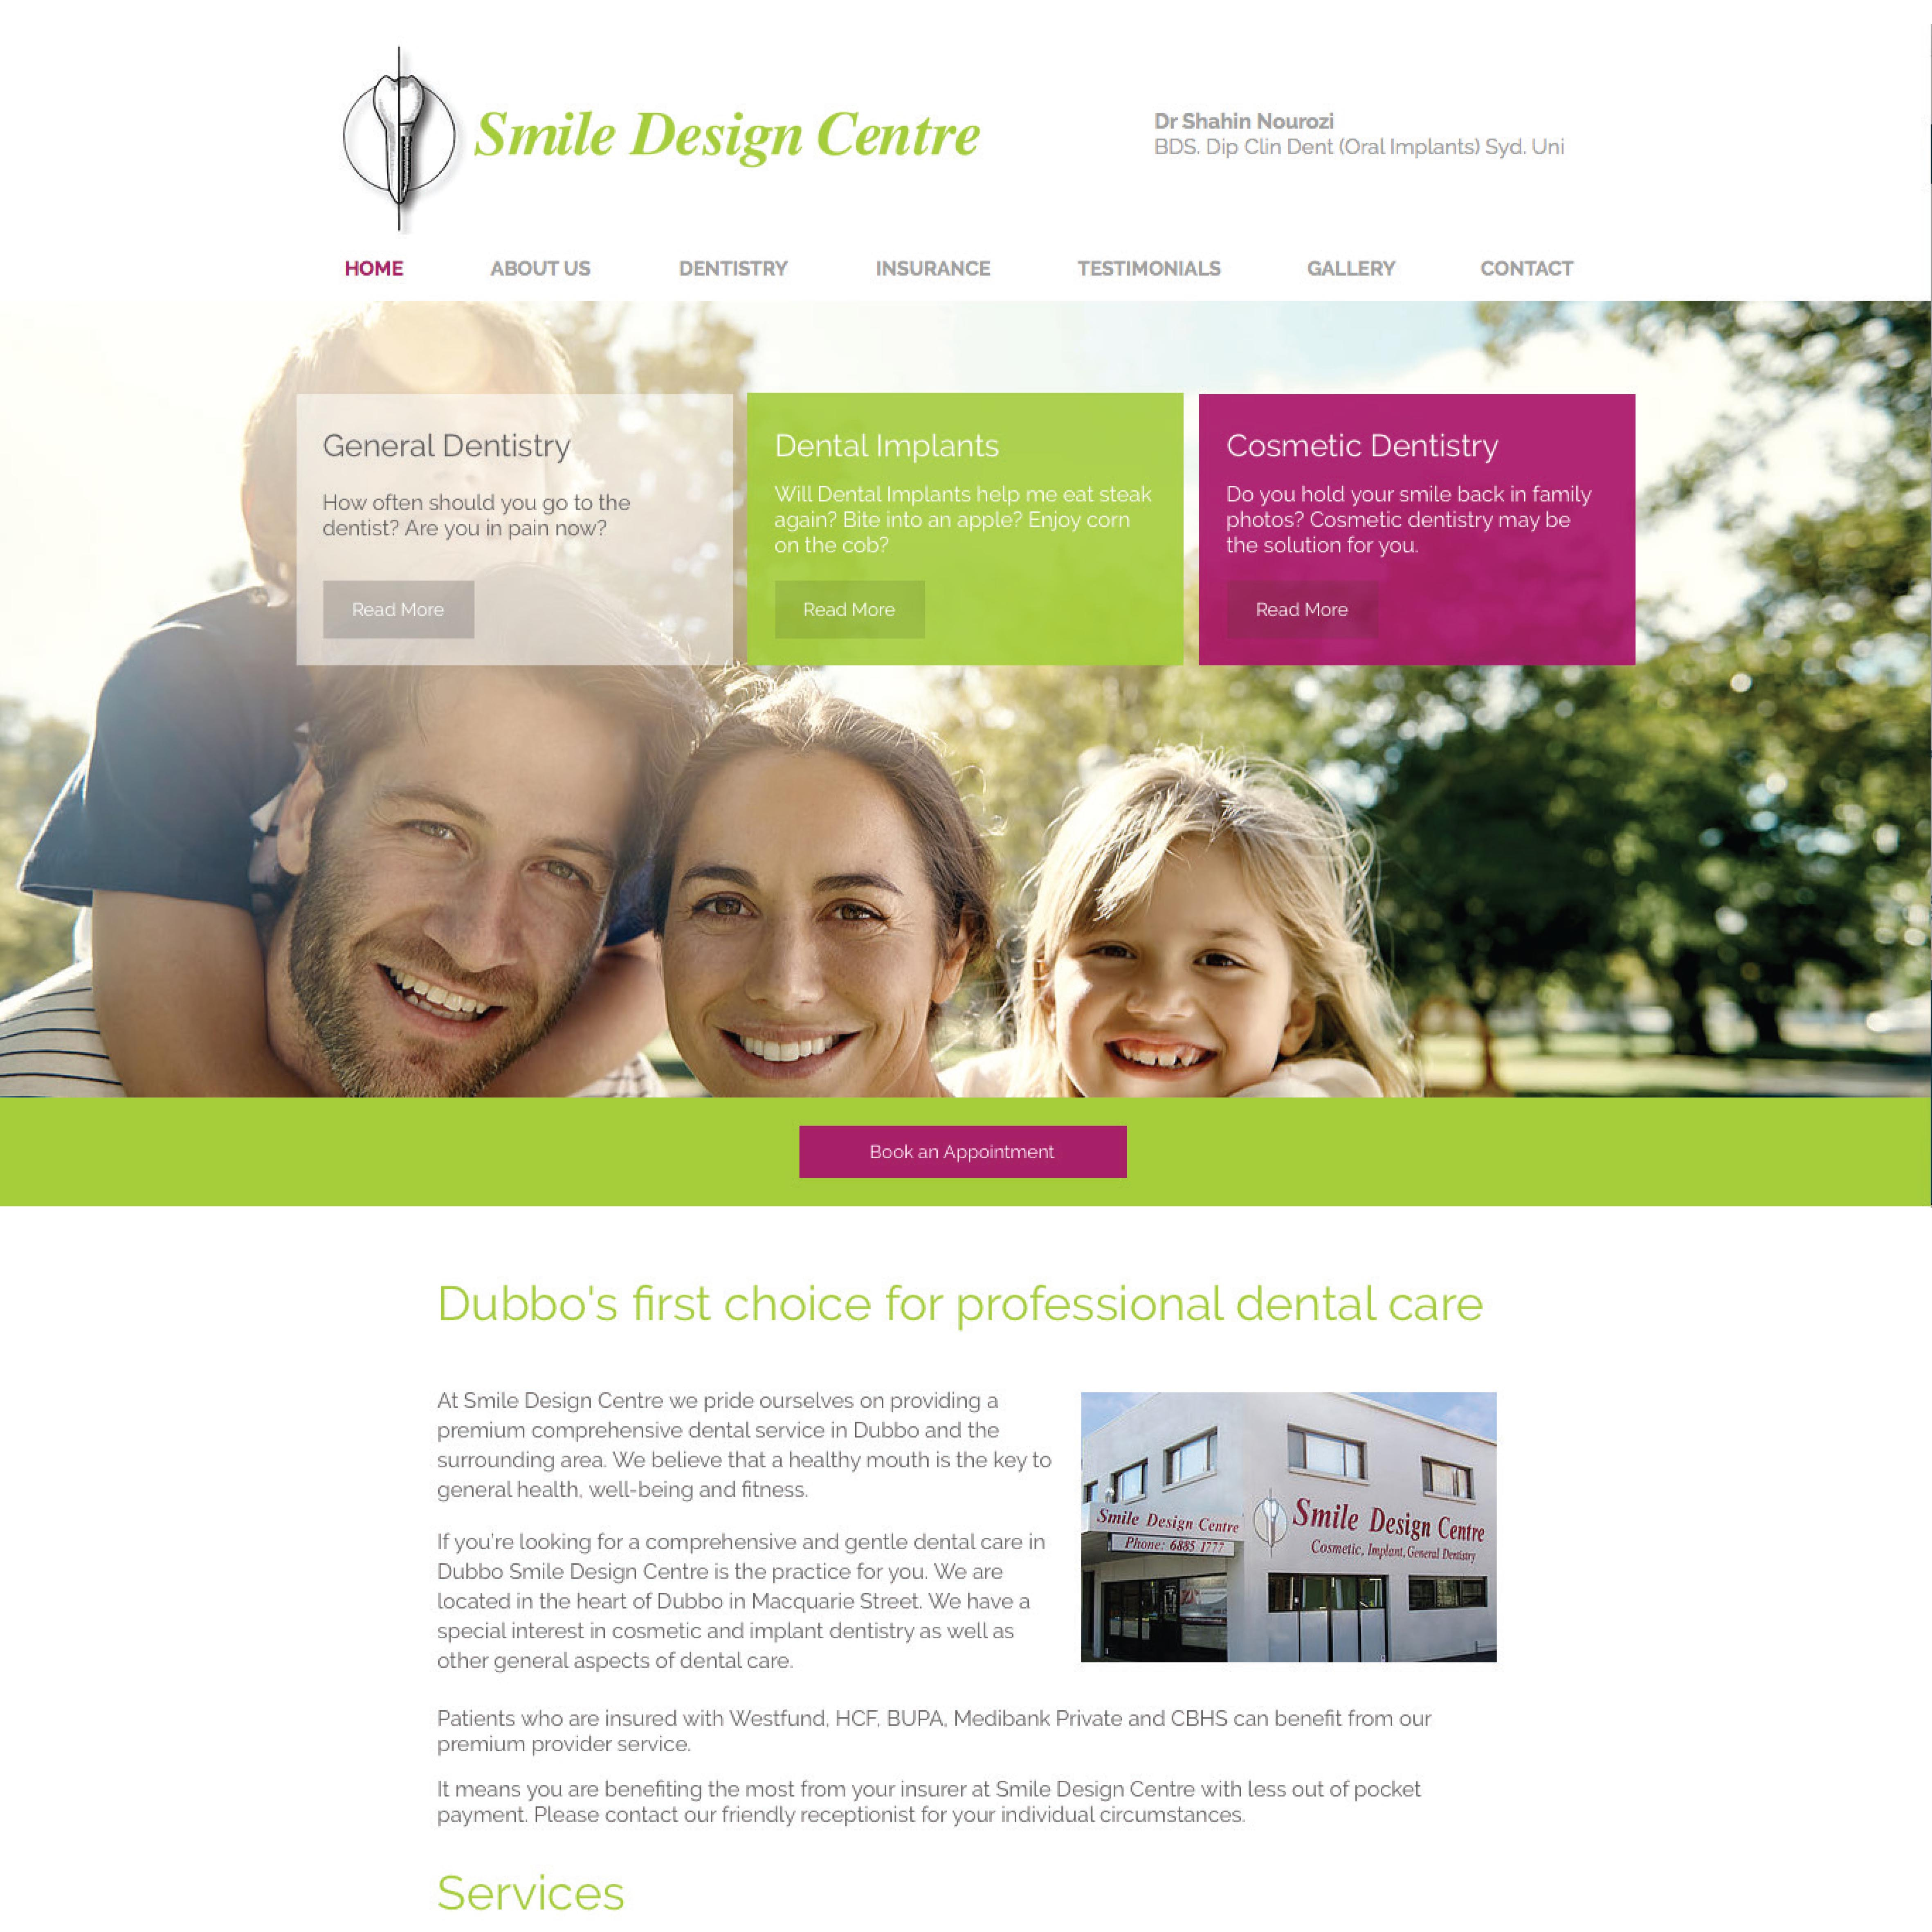 Smile Design Centre Website